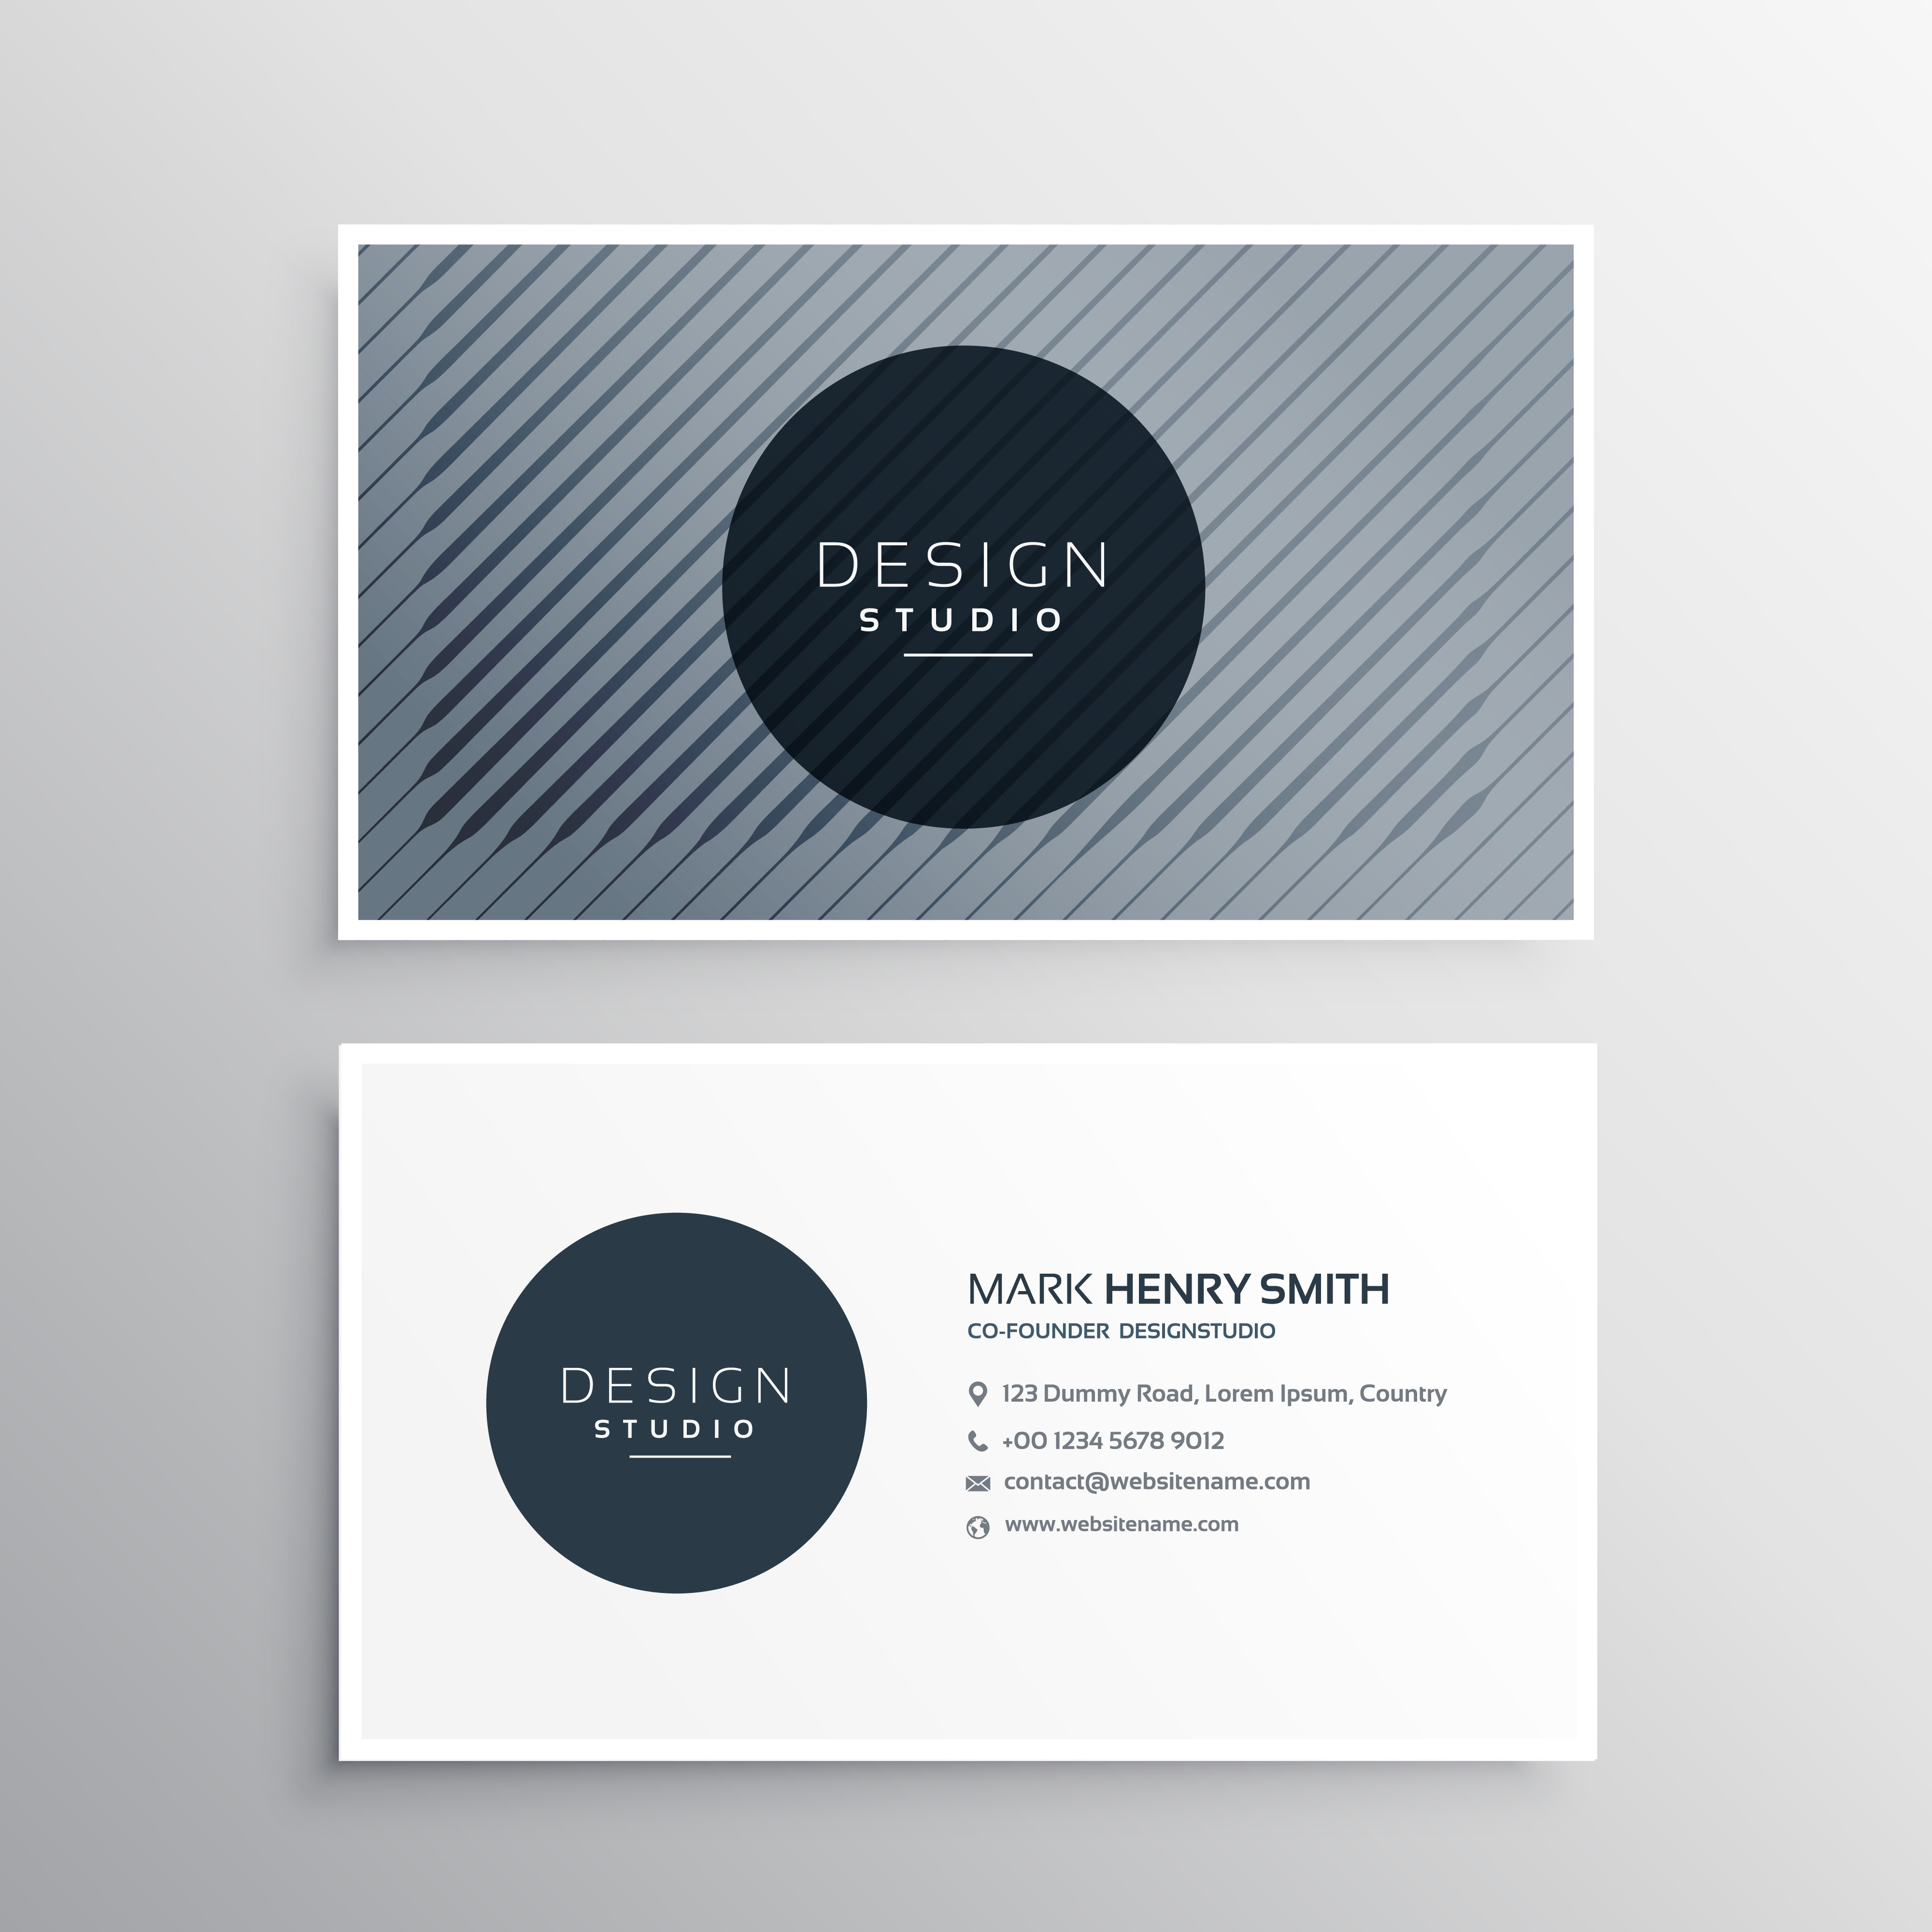 Company business card layout template with abstract pattern line company business card layout template with abstract pattern line download free vector art stock graphics images fbccfo Images